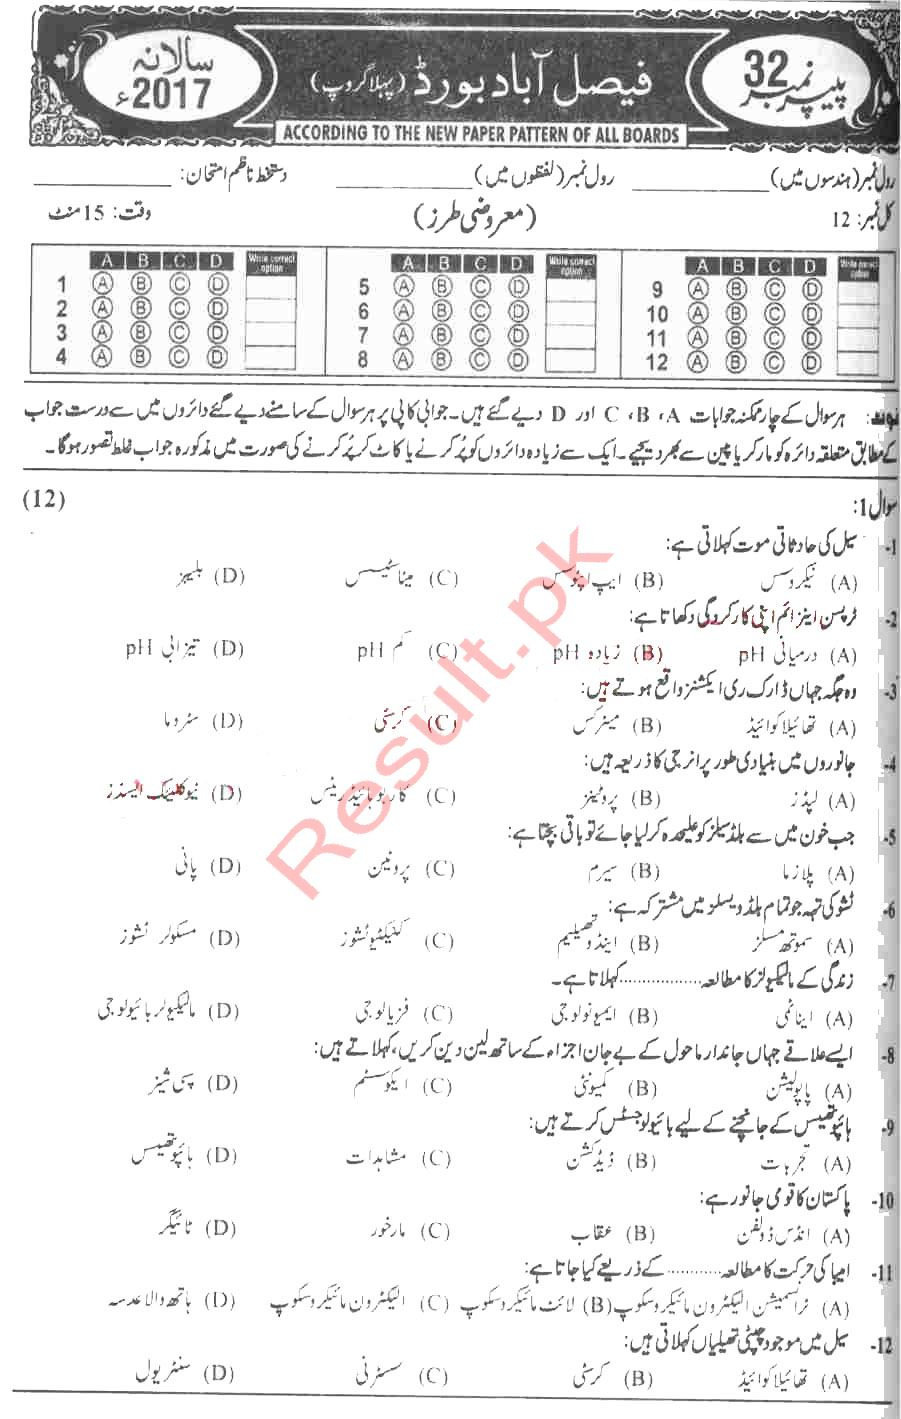 BISE Faisalabad Board Past Papers 2019 Matric, SSC Part 1 & 2, 9th